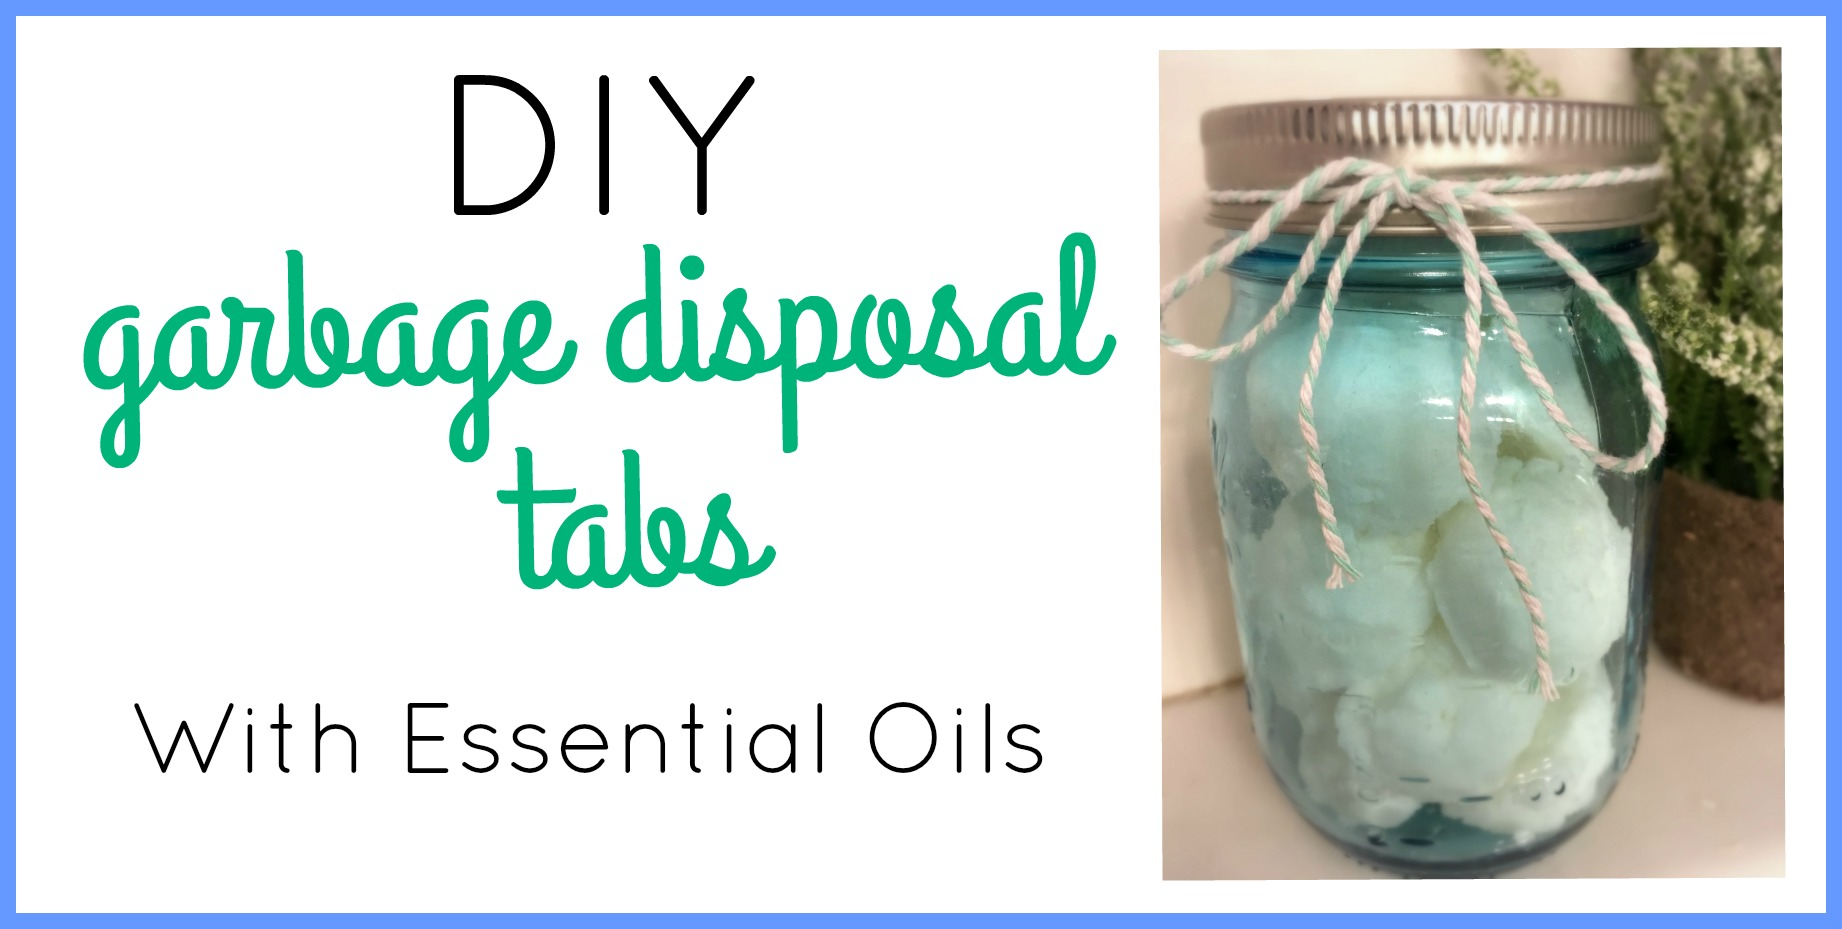 DIY Garbage Disposal Pods